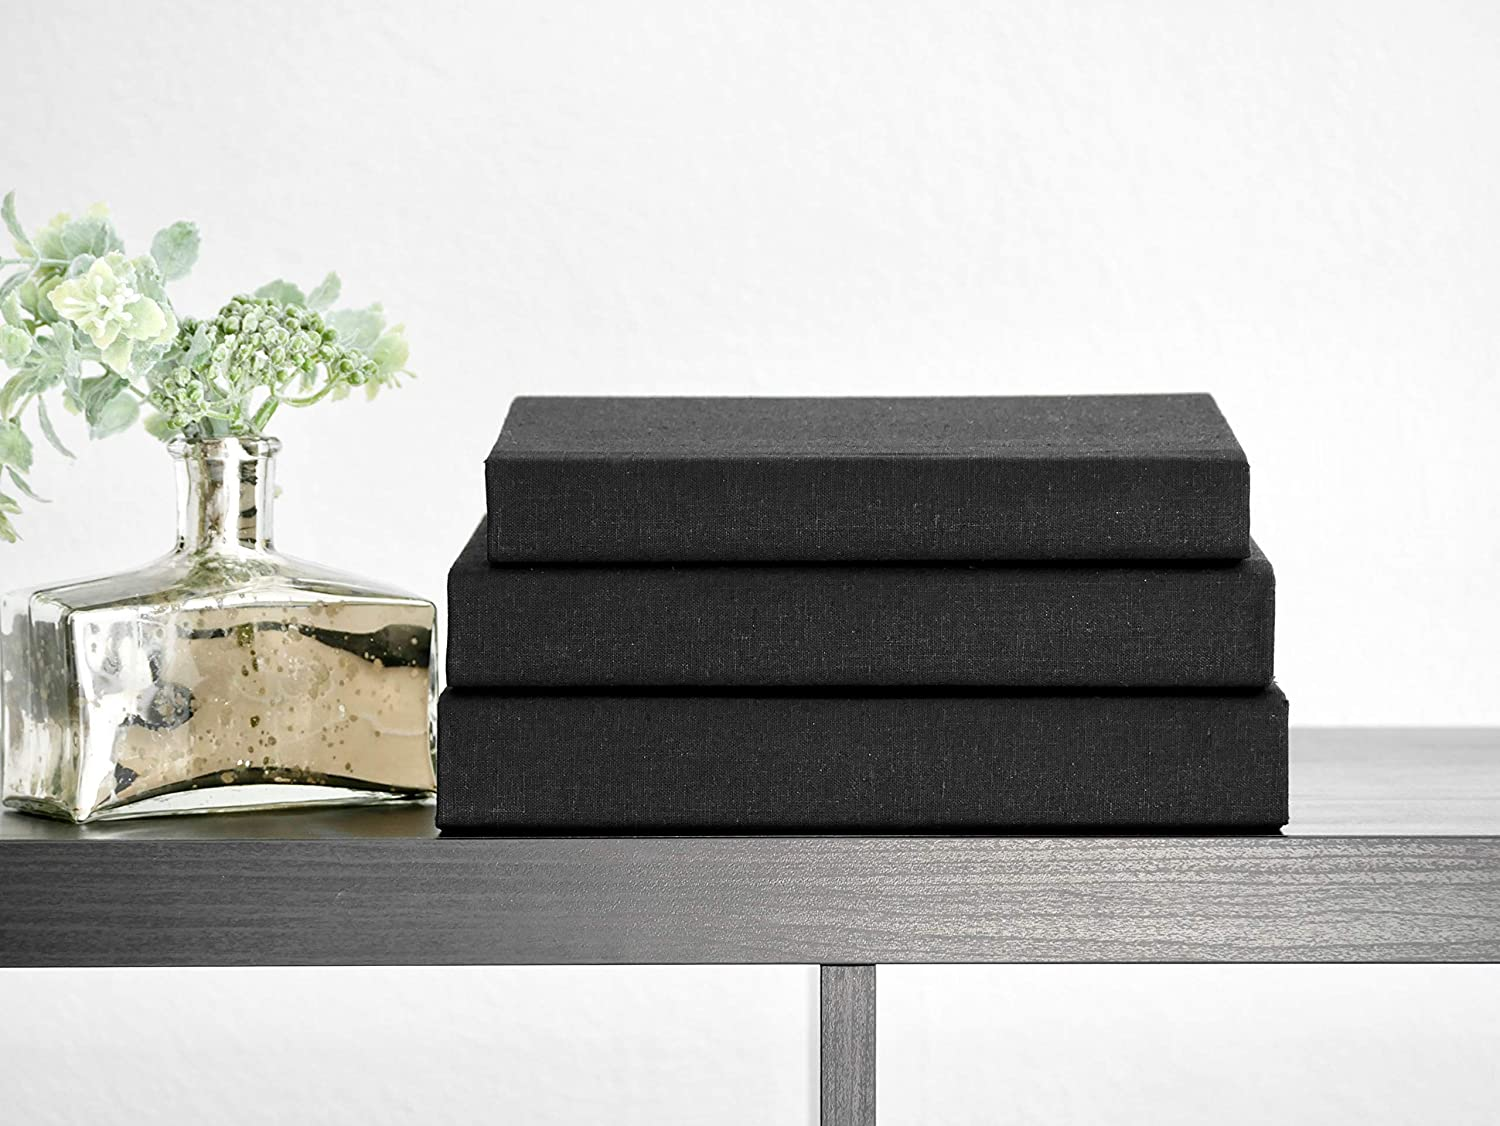 Shop Black Linen Covered Decorative Books for Display (Set of 3) from Amazon on Openhaus